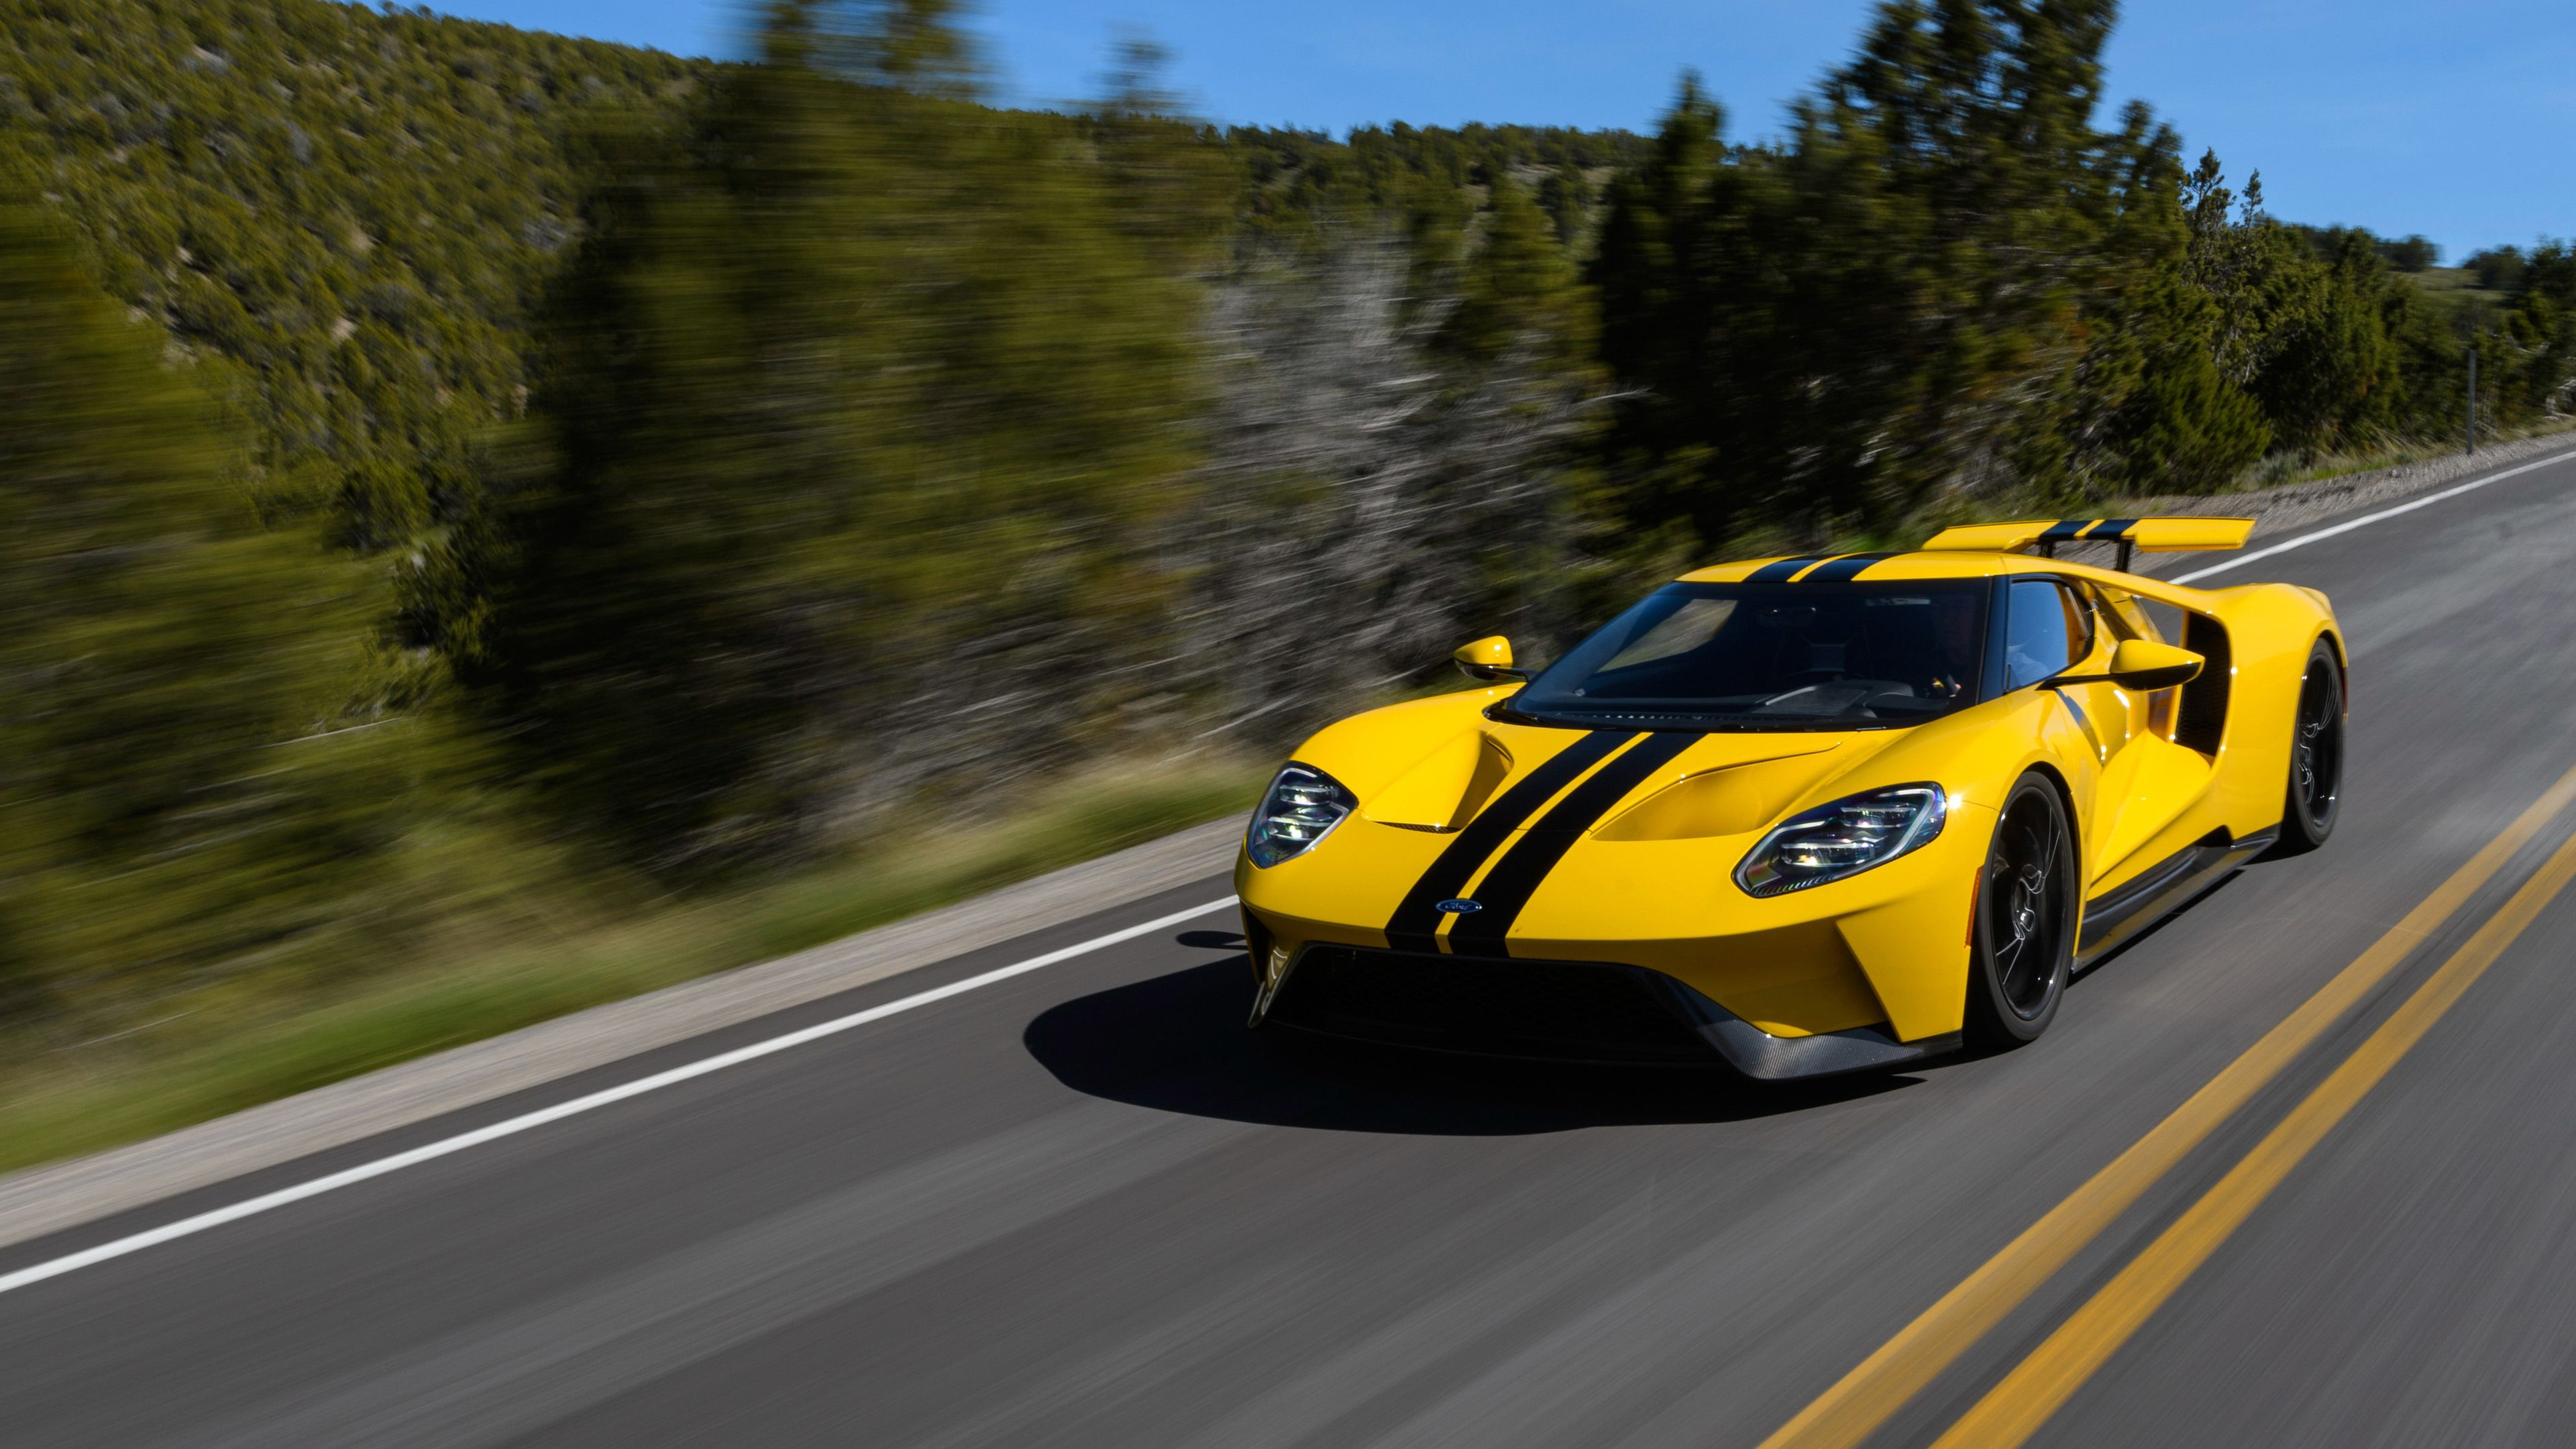 Wallpaper 4k Ford Gt 2017 3 2017 Cars Wallpapers 4k Wallpapers